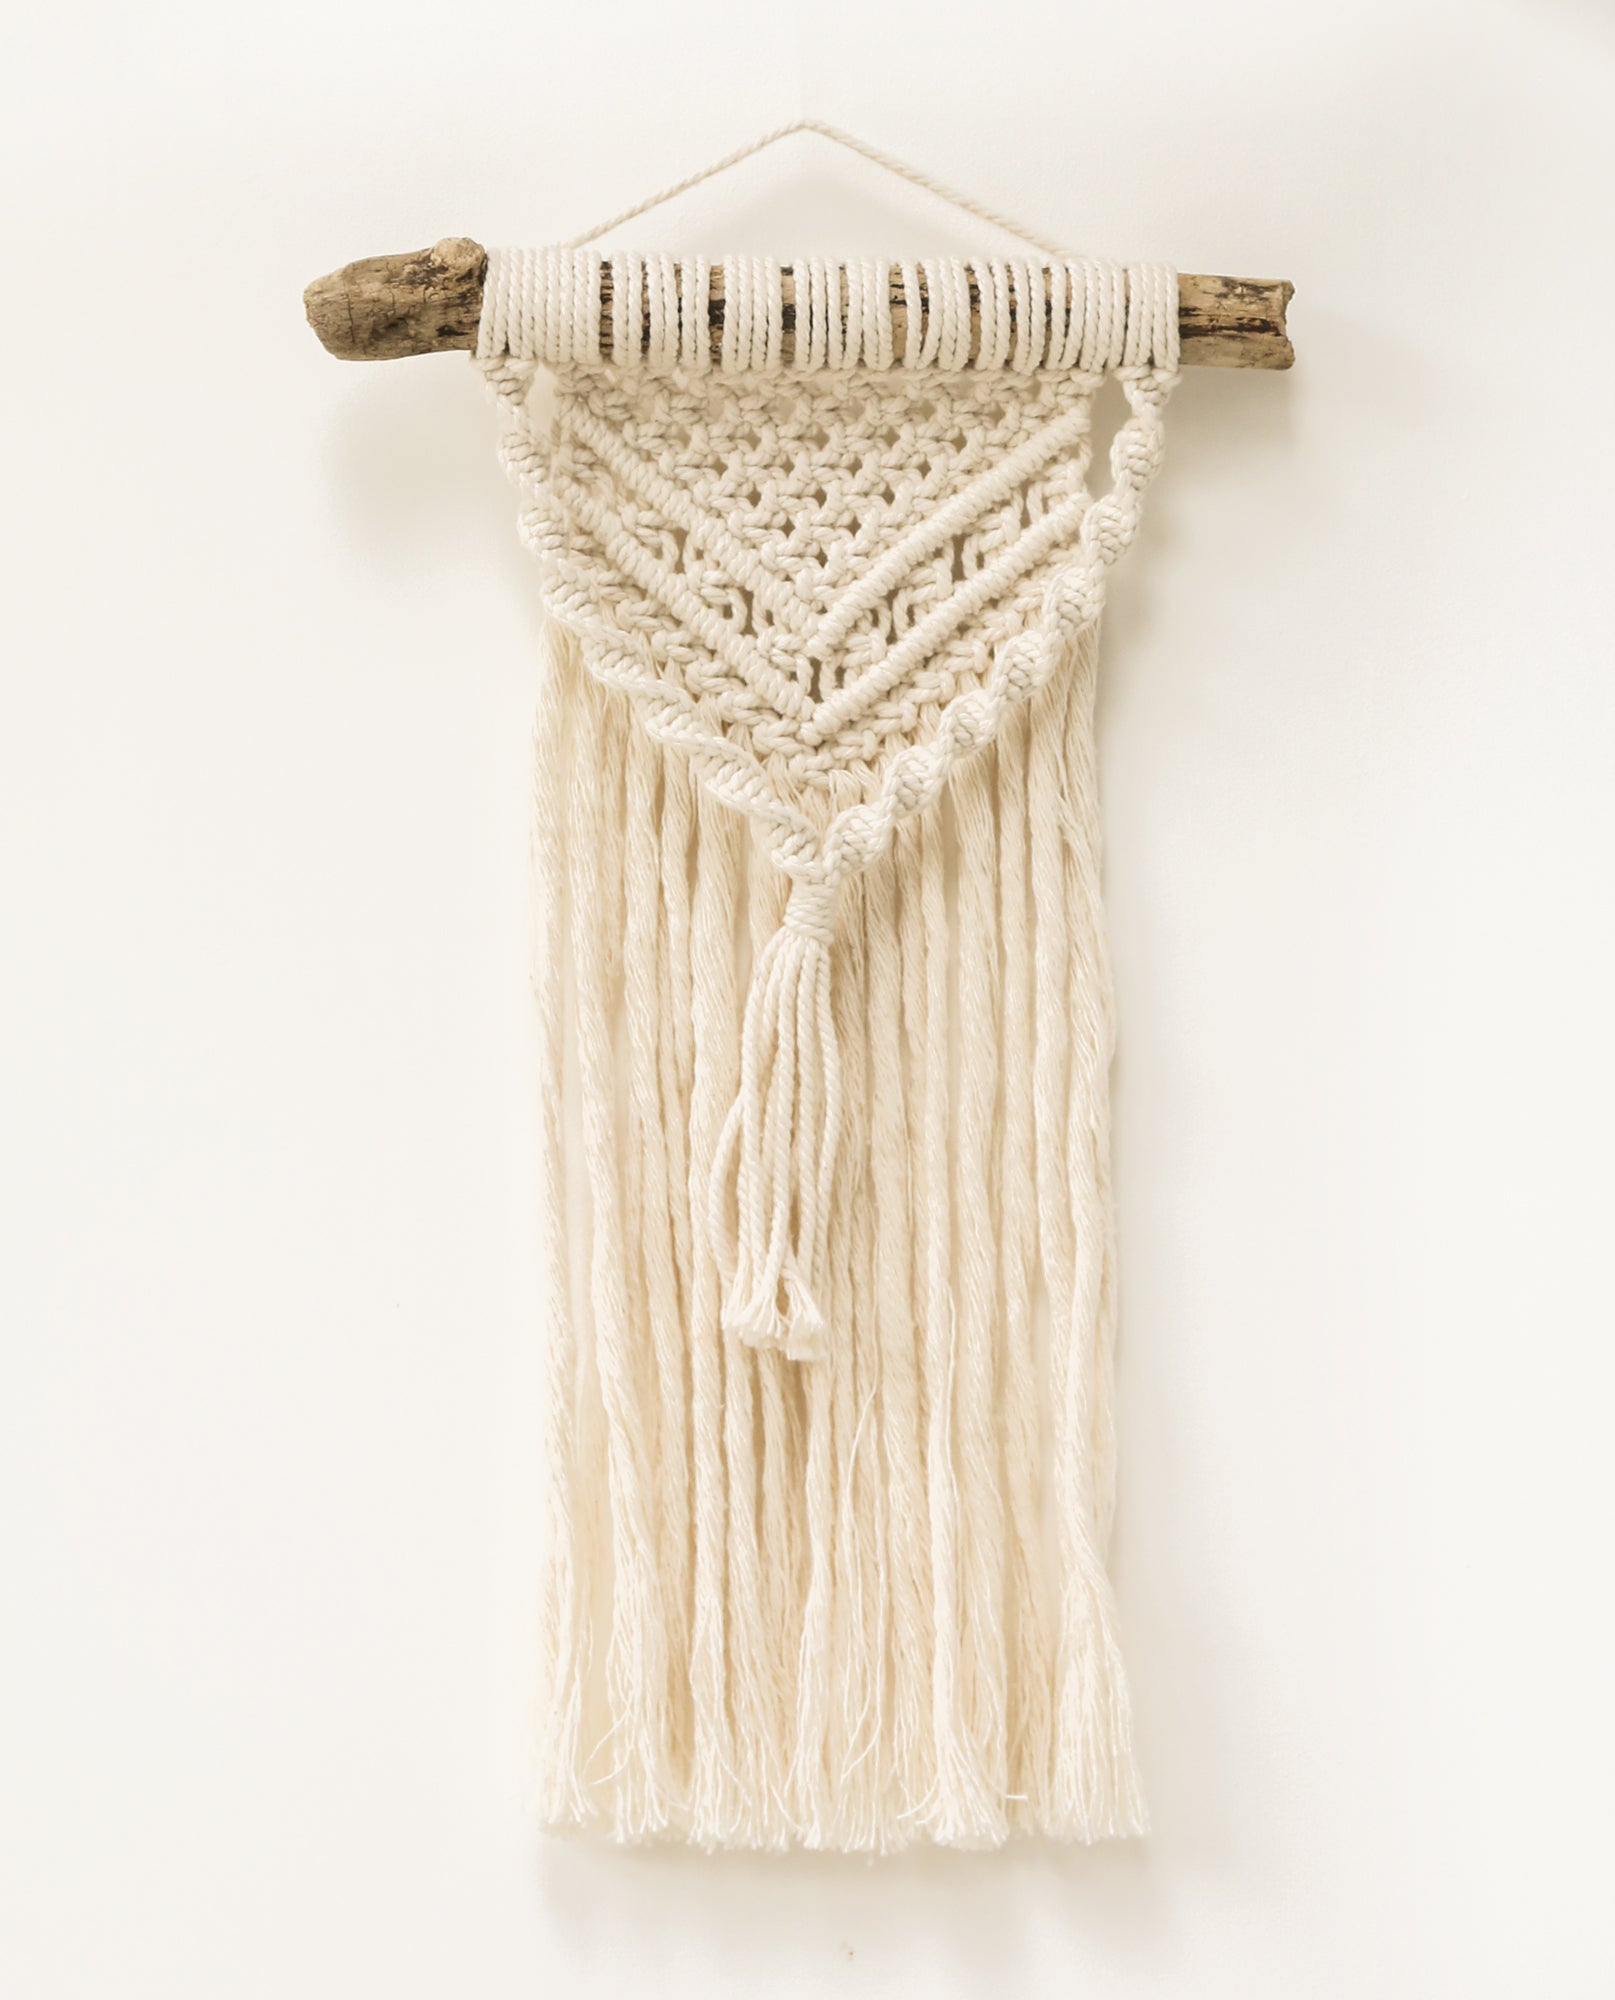 Small Macrame Wall Hanging With Driftwood